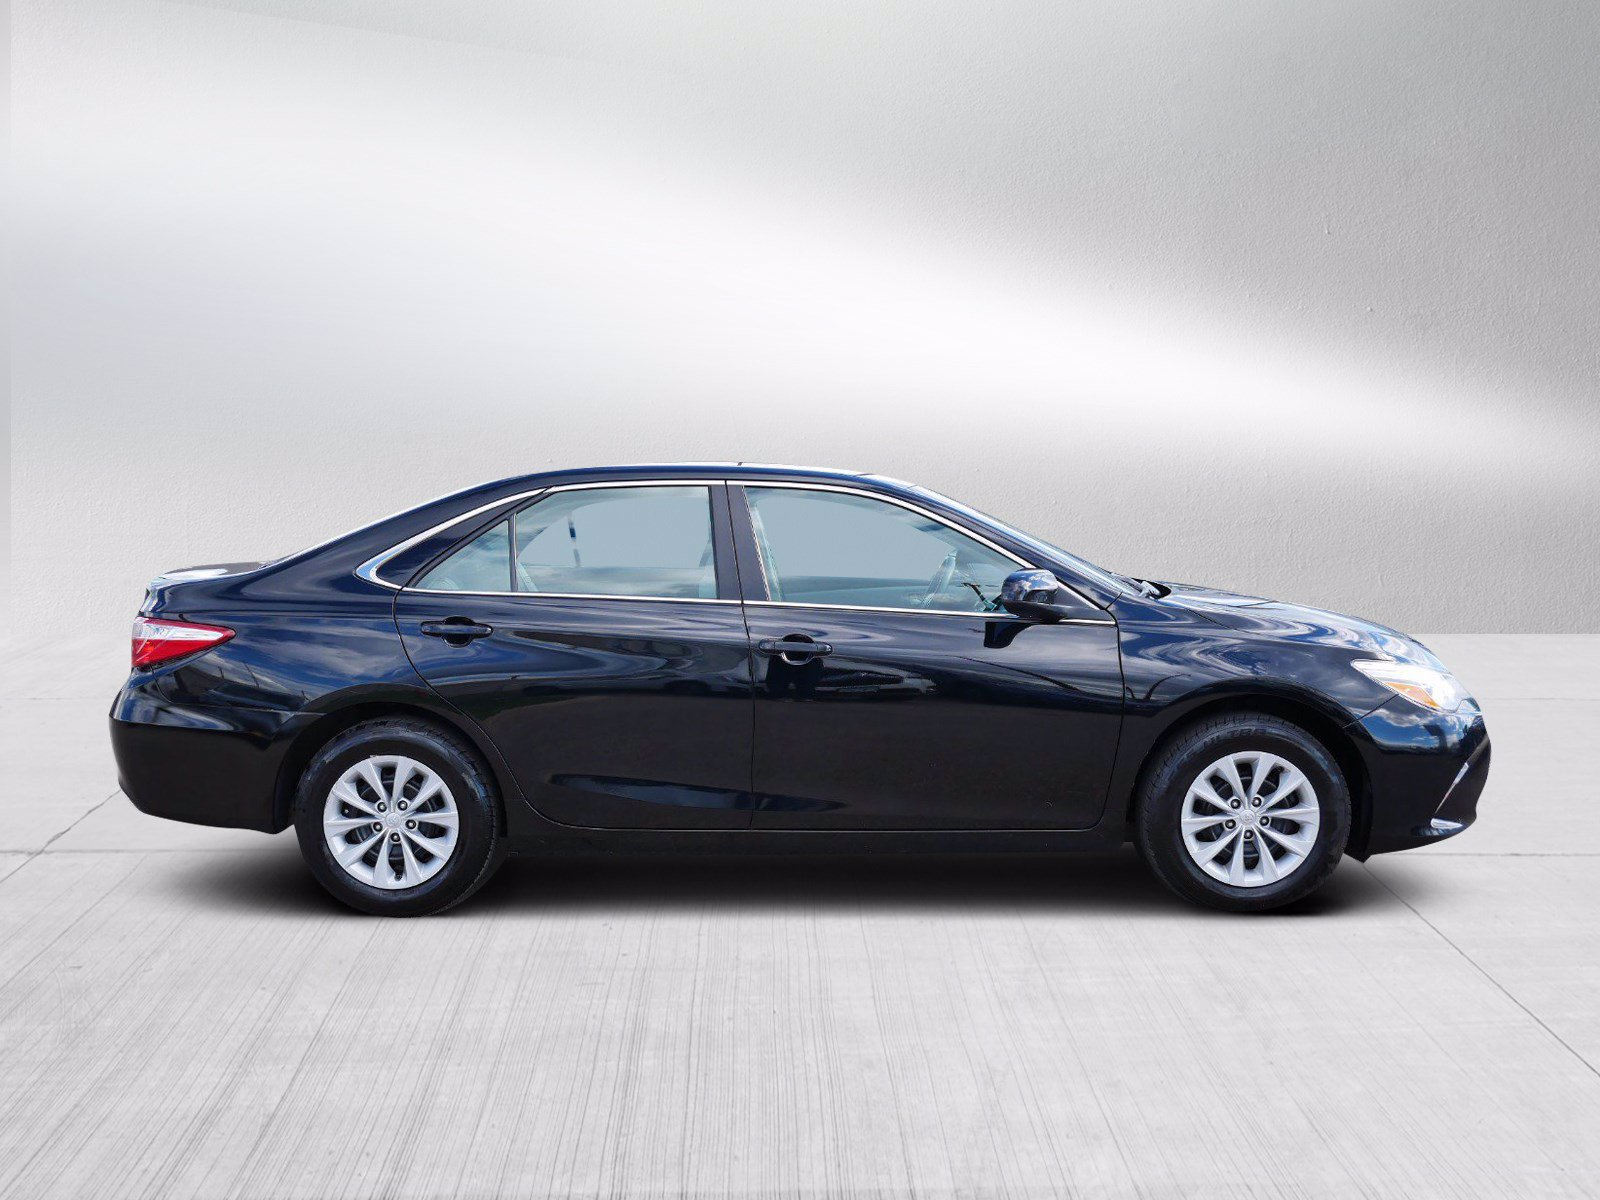 Used 2016 Toyota Camry LE with VIN 4T1BF1FK8GU576892 for sale in Bloomington, Minnesota